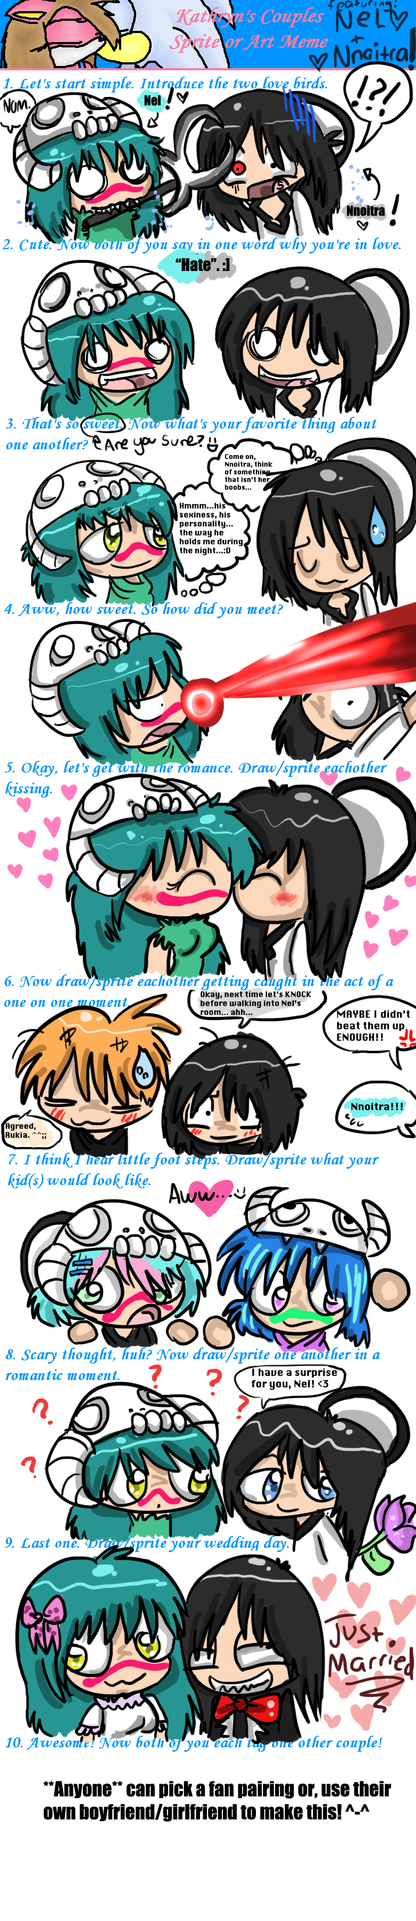 Bleach: Nel X Nnoitra Romance Meme by Violent-Rainbow